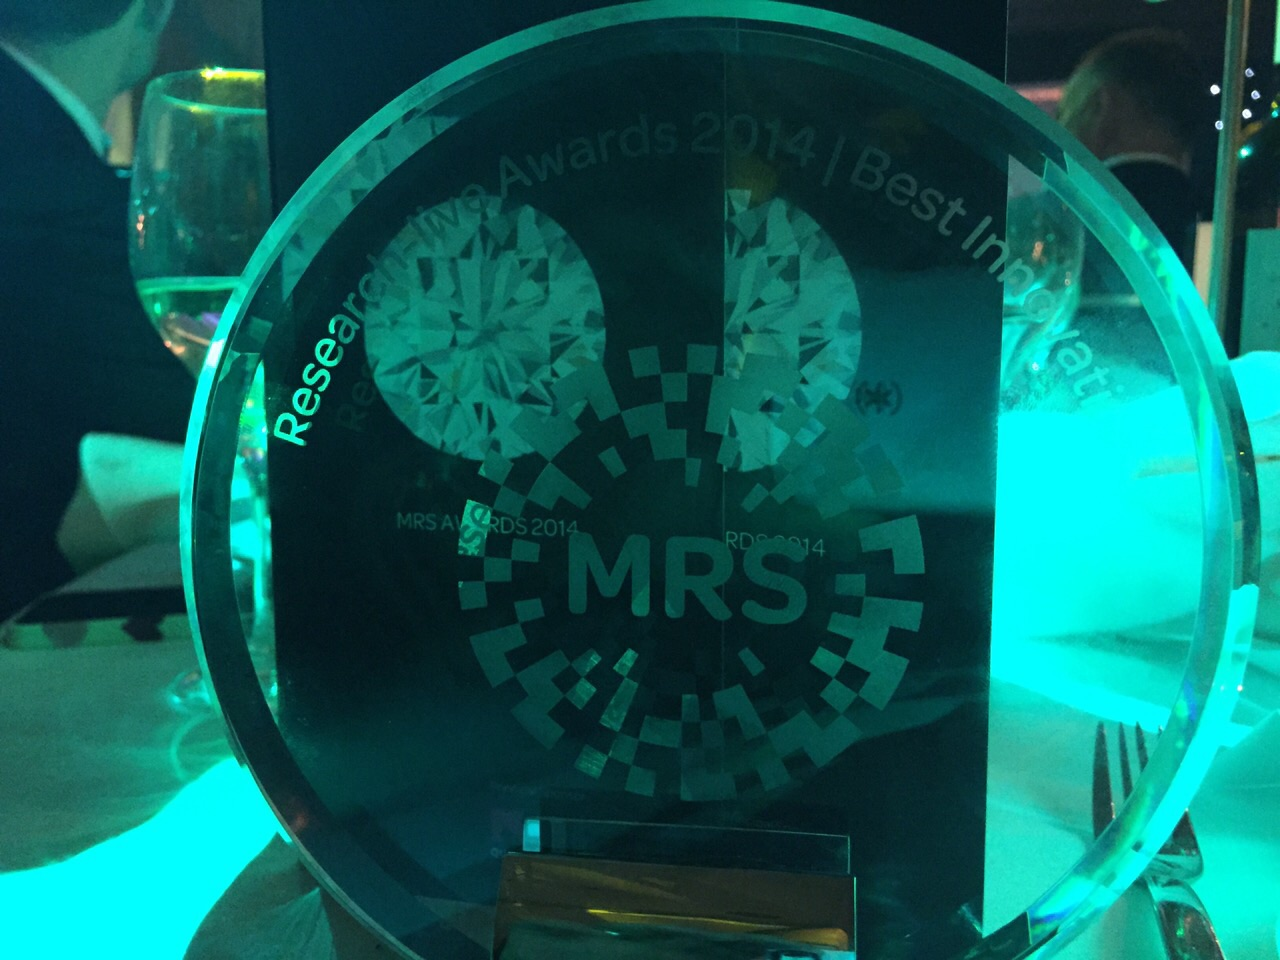 MRS Awards 2014 Best Innovation